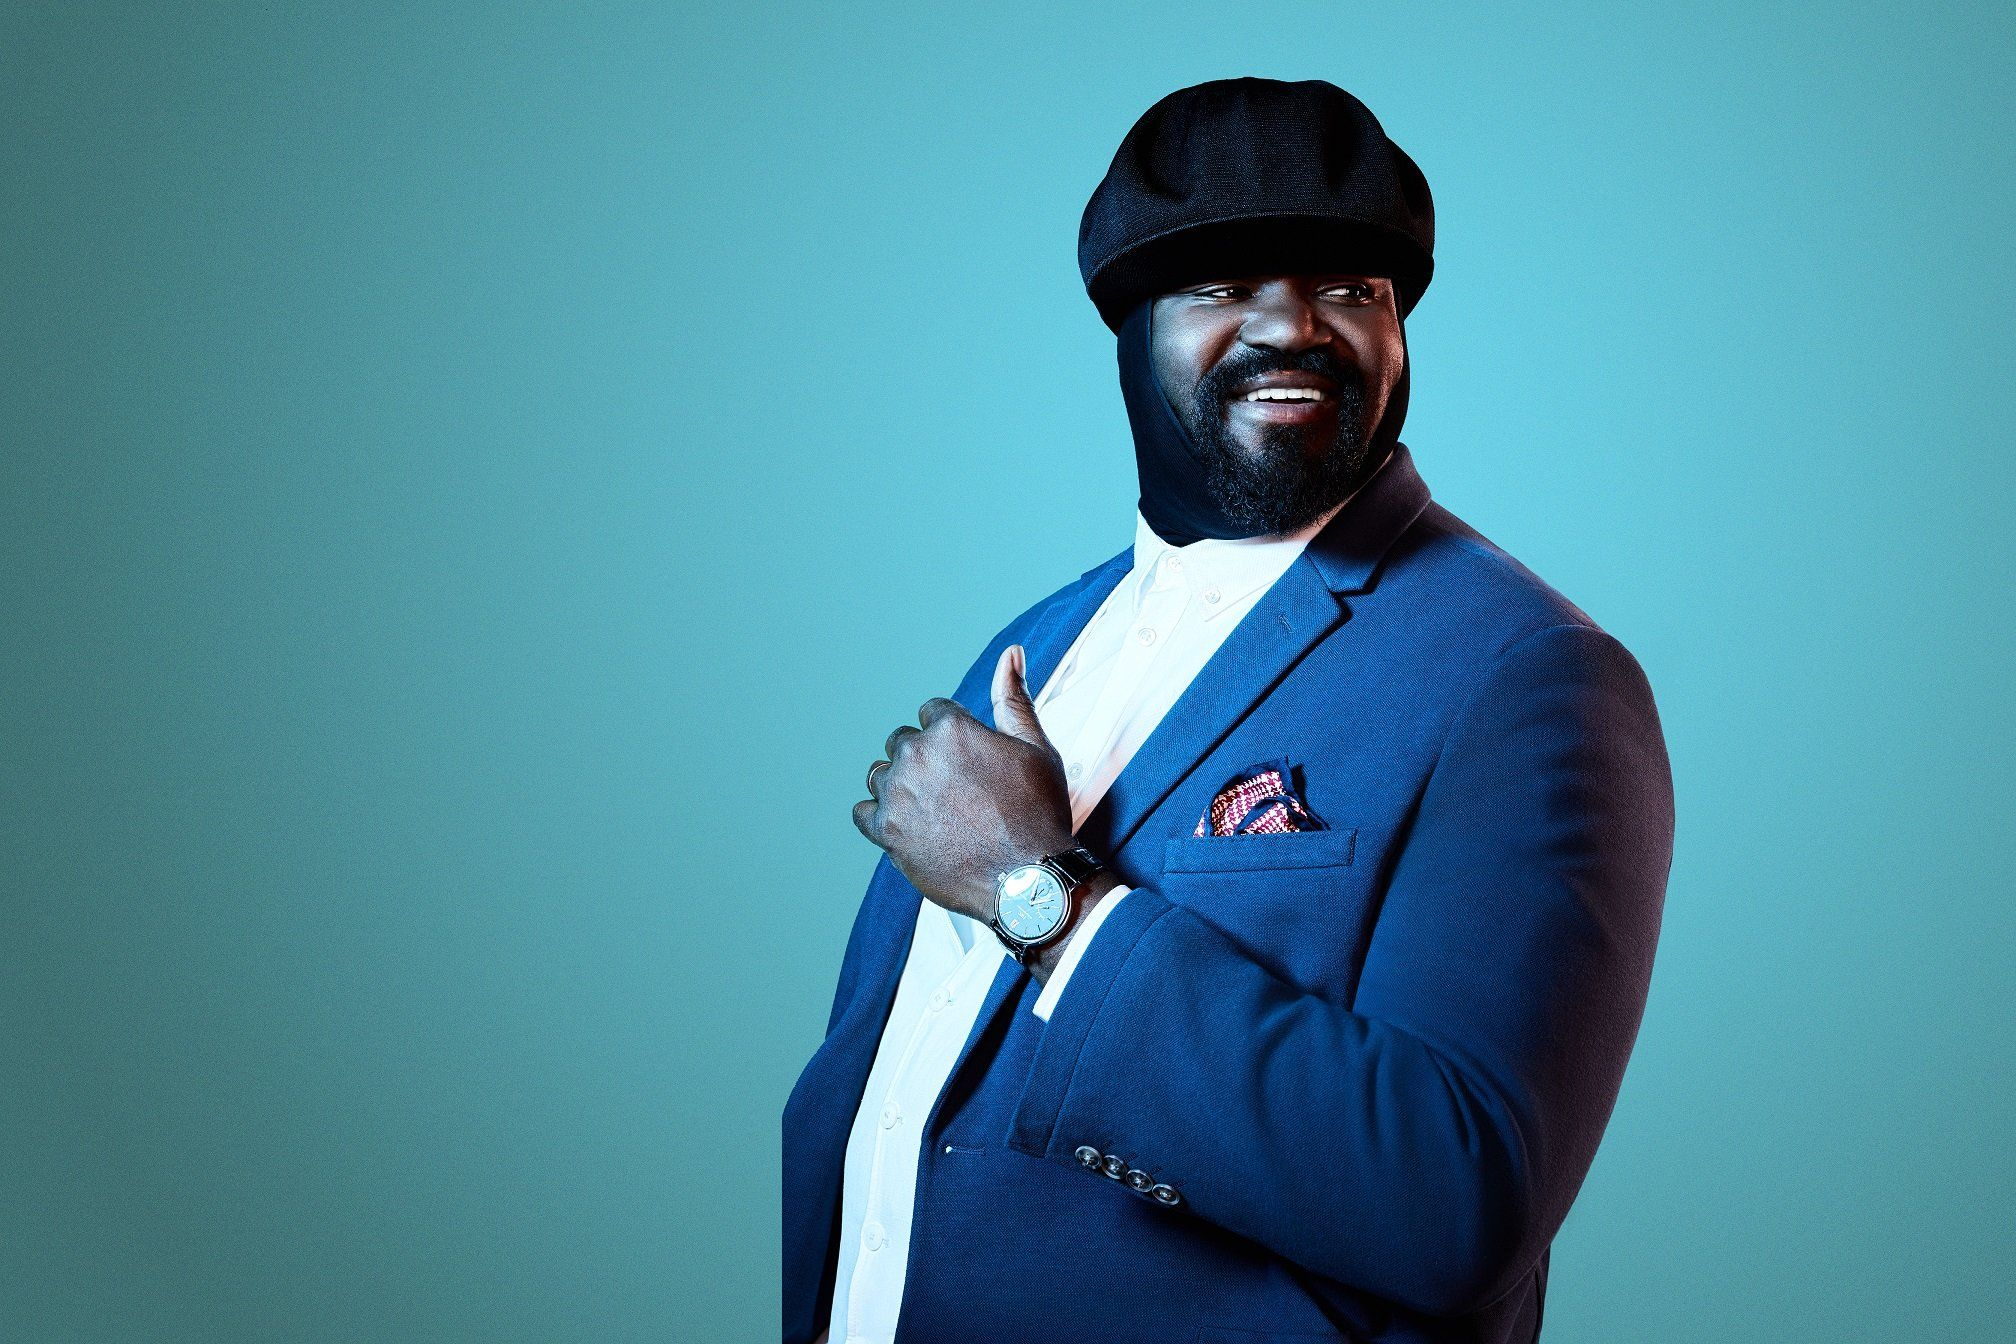 Gregory Porter On What Keeps Him Grounded And Why There's Only One Way To Deal With